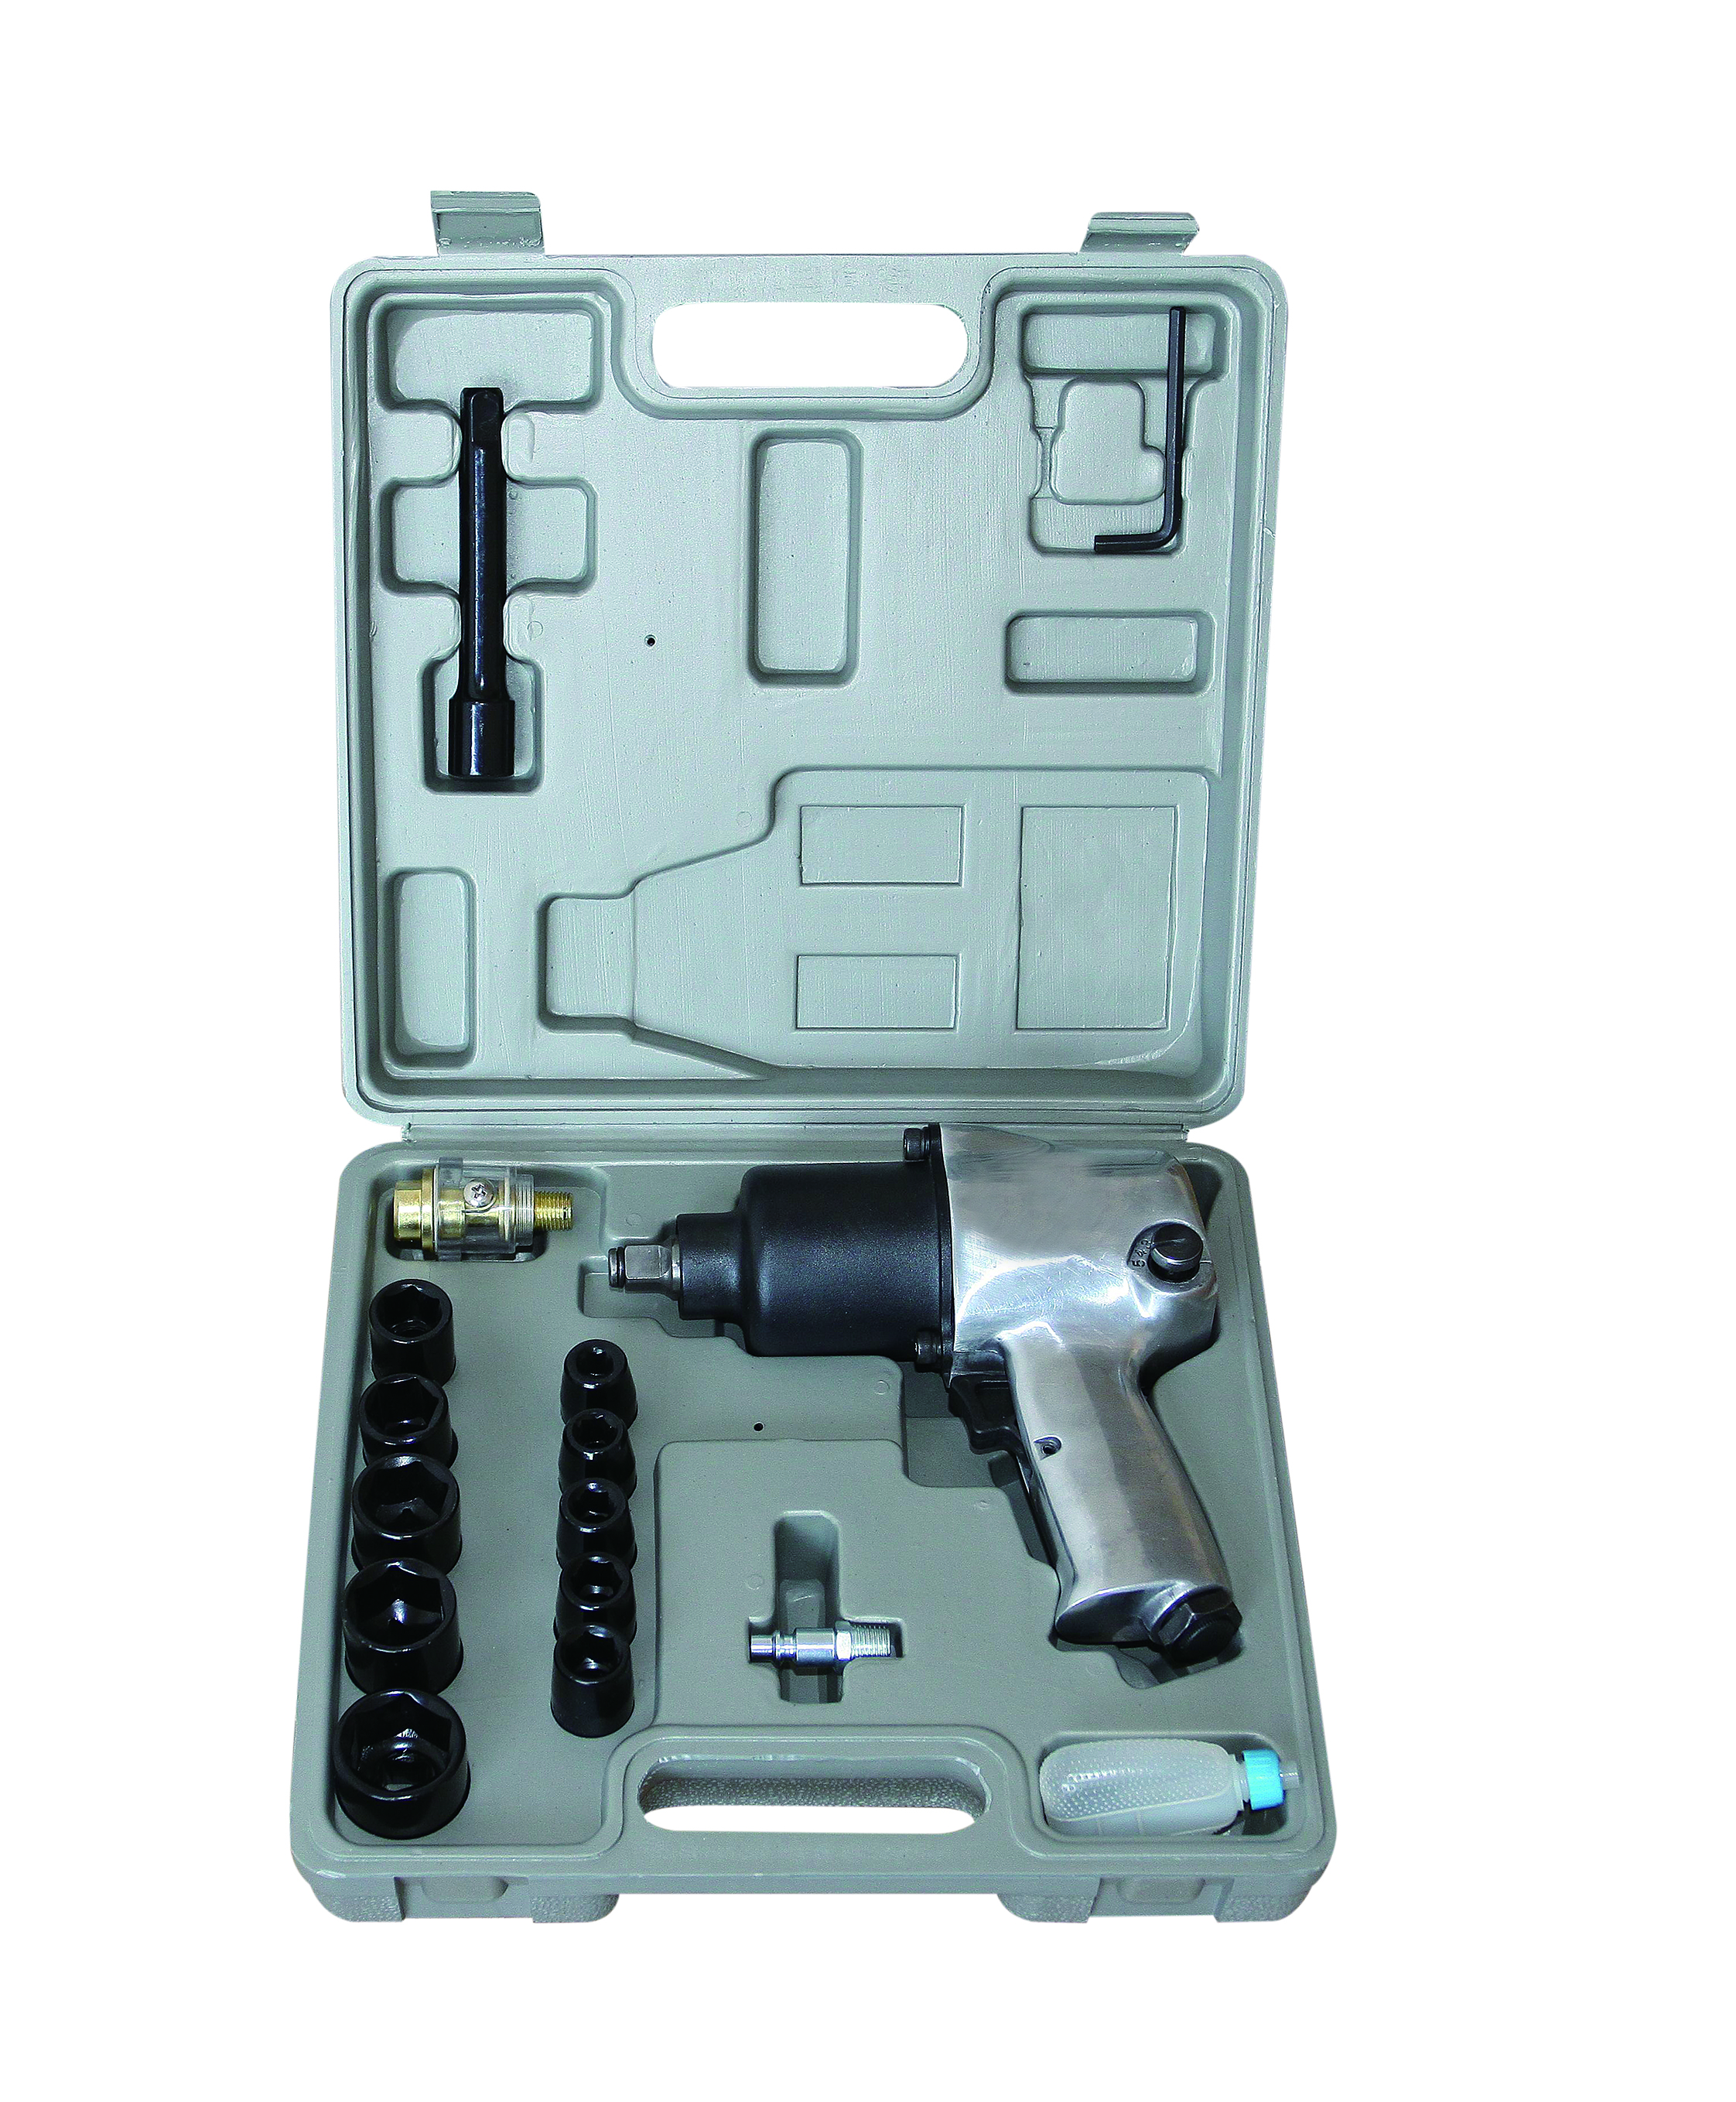 New air impact multi tool set kit uncle wiener s